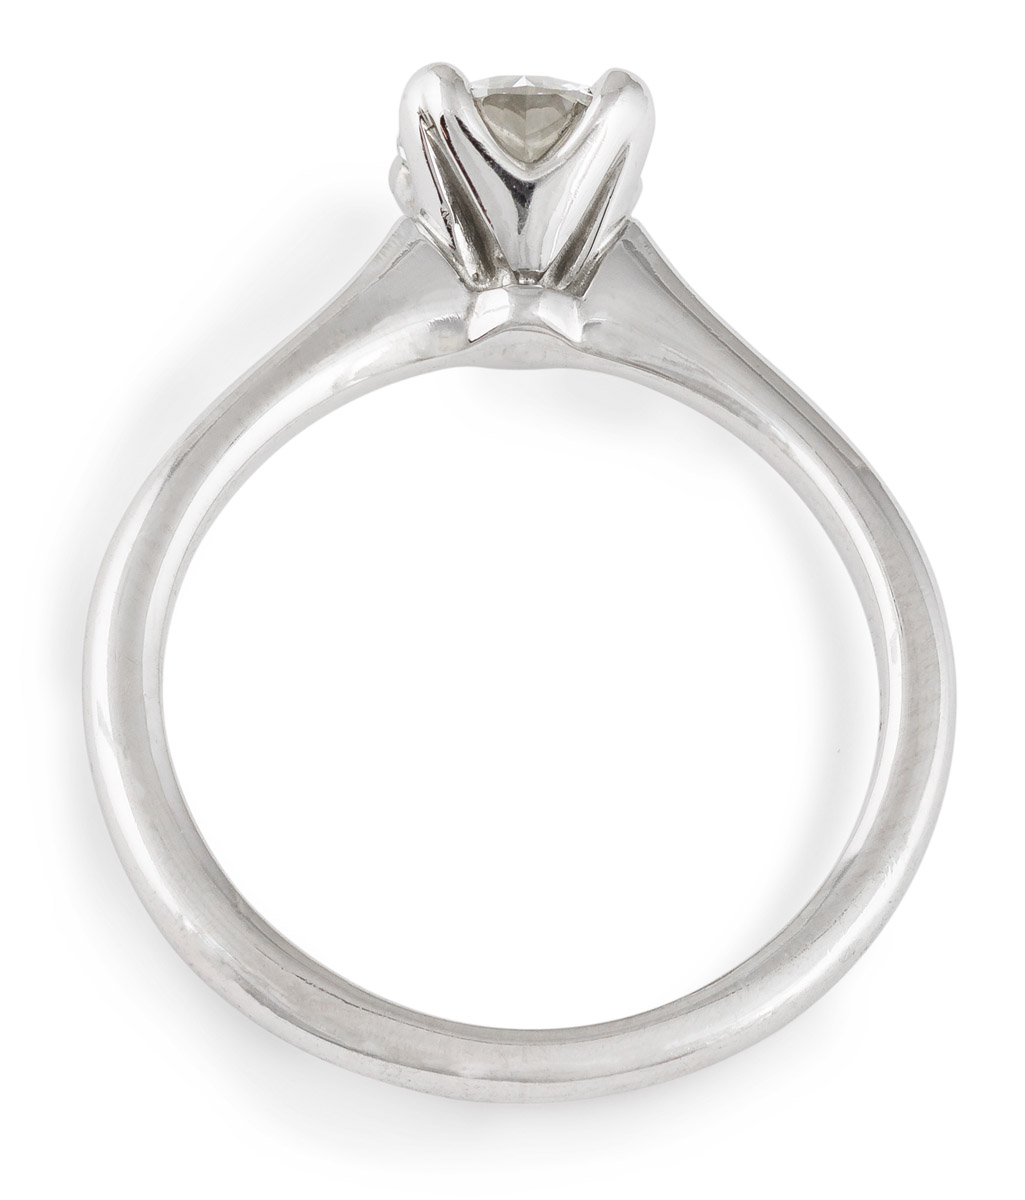 Simple Solitaire Diamond Engagement Ring - Top